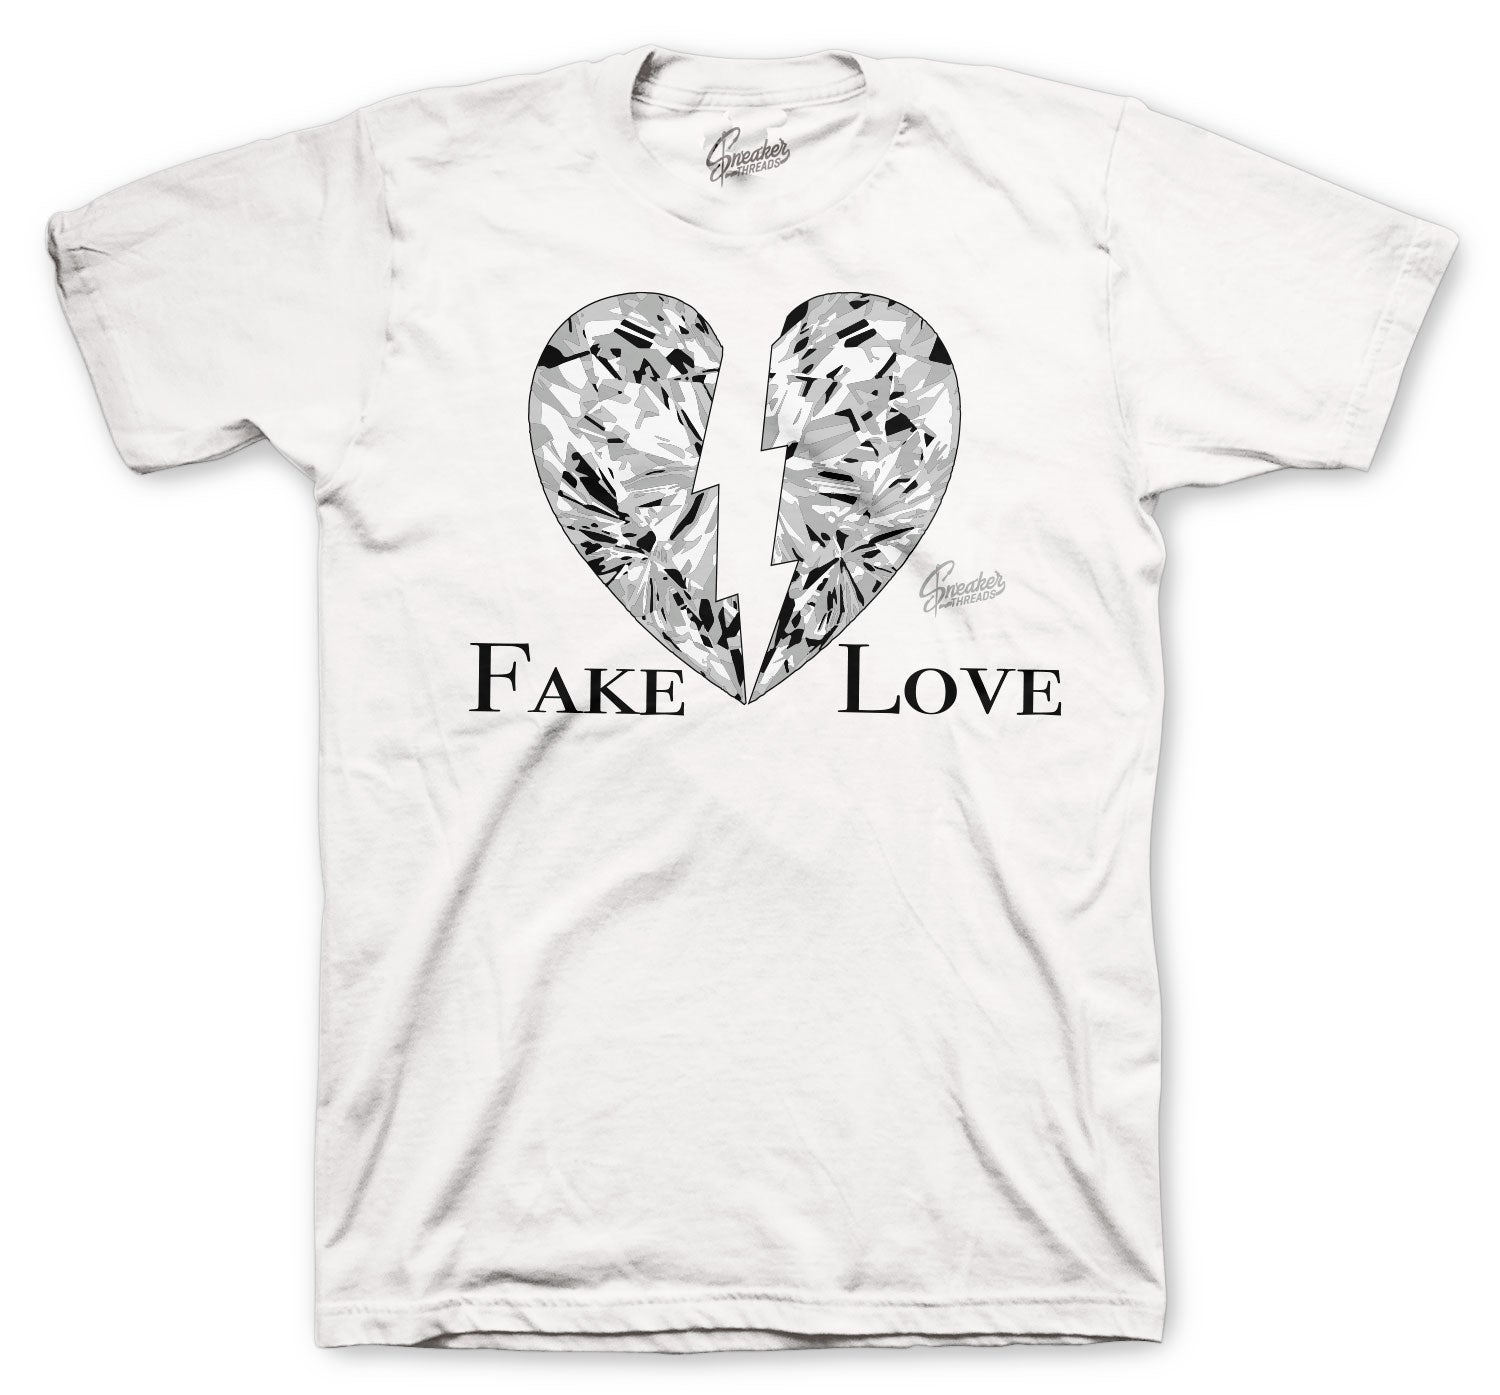 Jordan 1 Neutral Grey Shirt - Fake Love - White